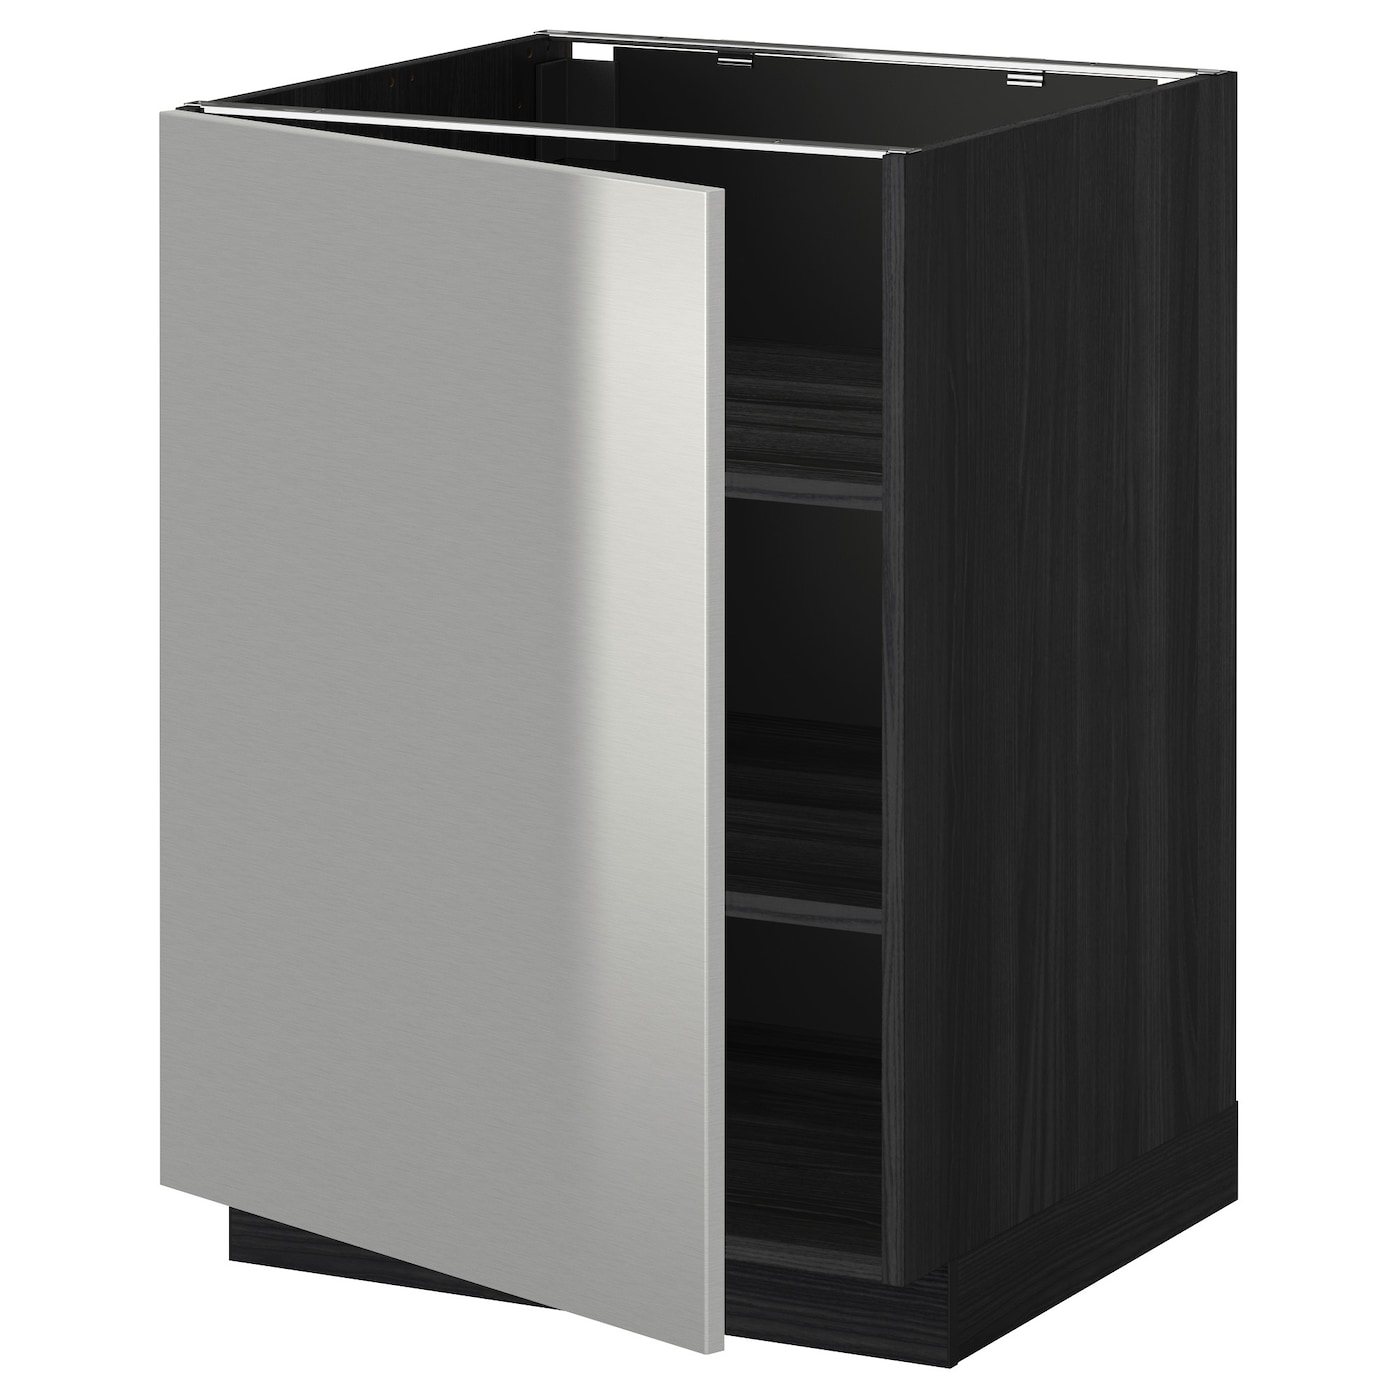 stainless steel kitchen base cabinets metod base cabinet with shelves black grevsta stainless 8241